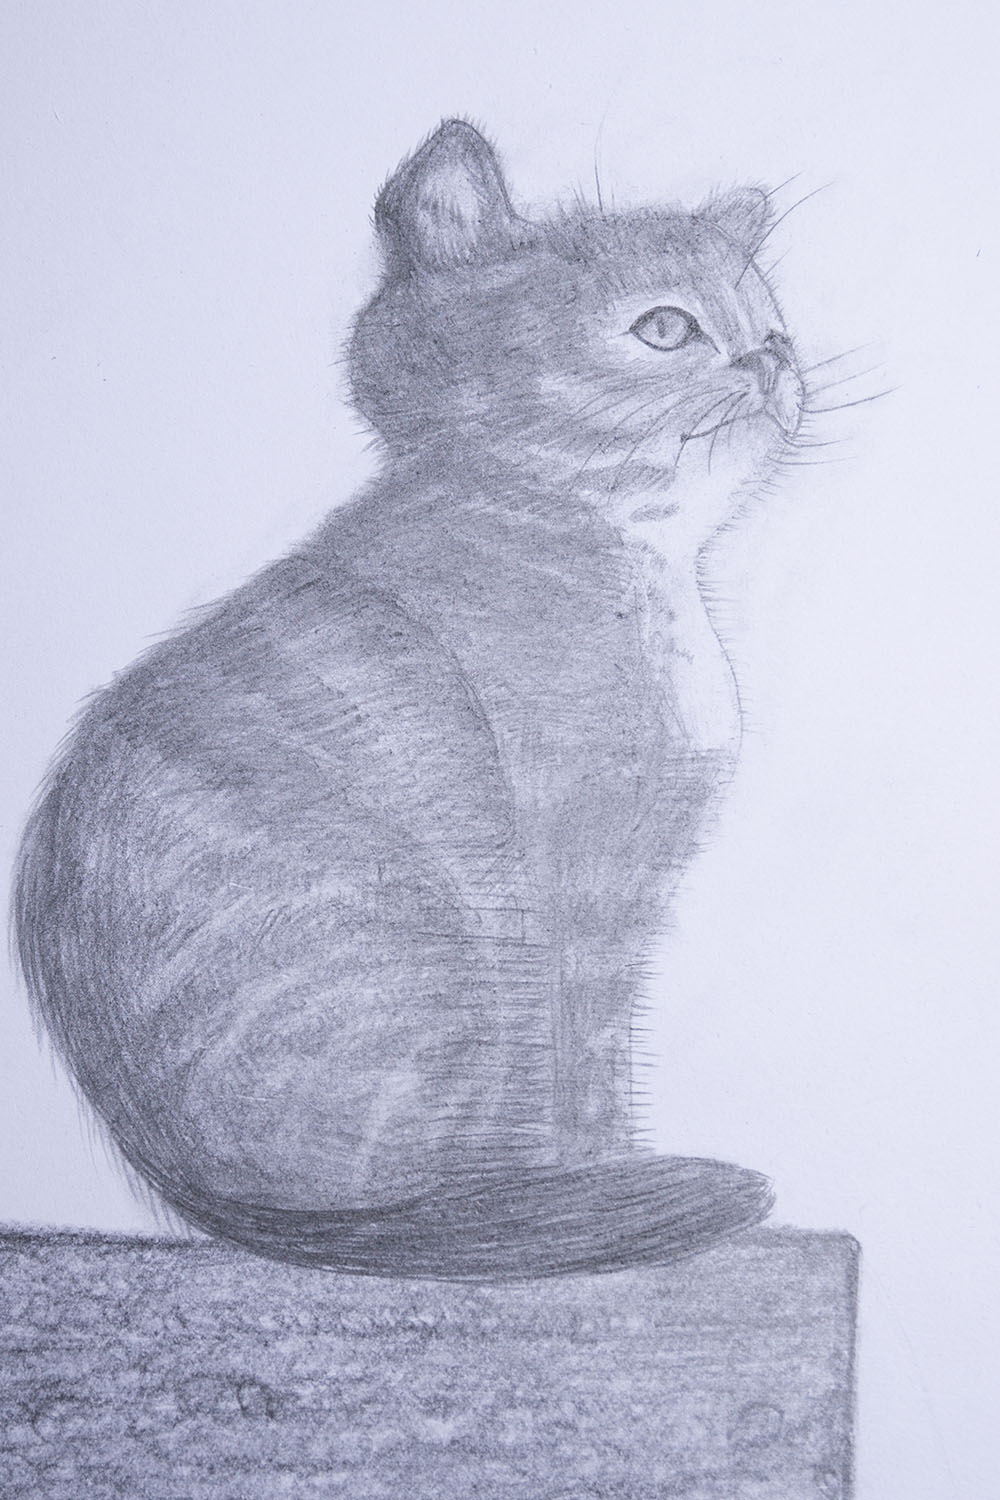 how to draw cat step by step for beginners